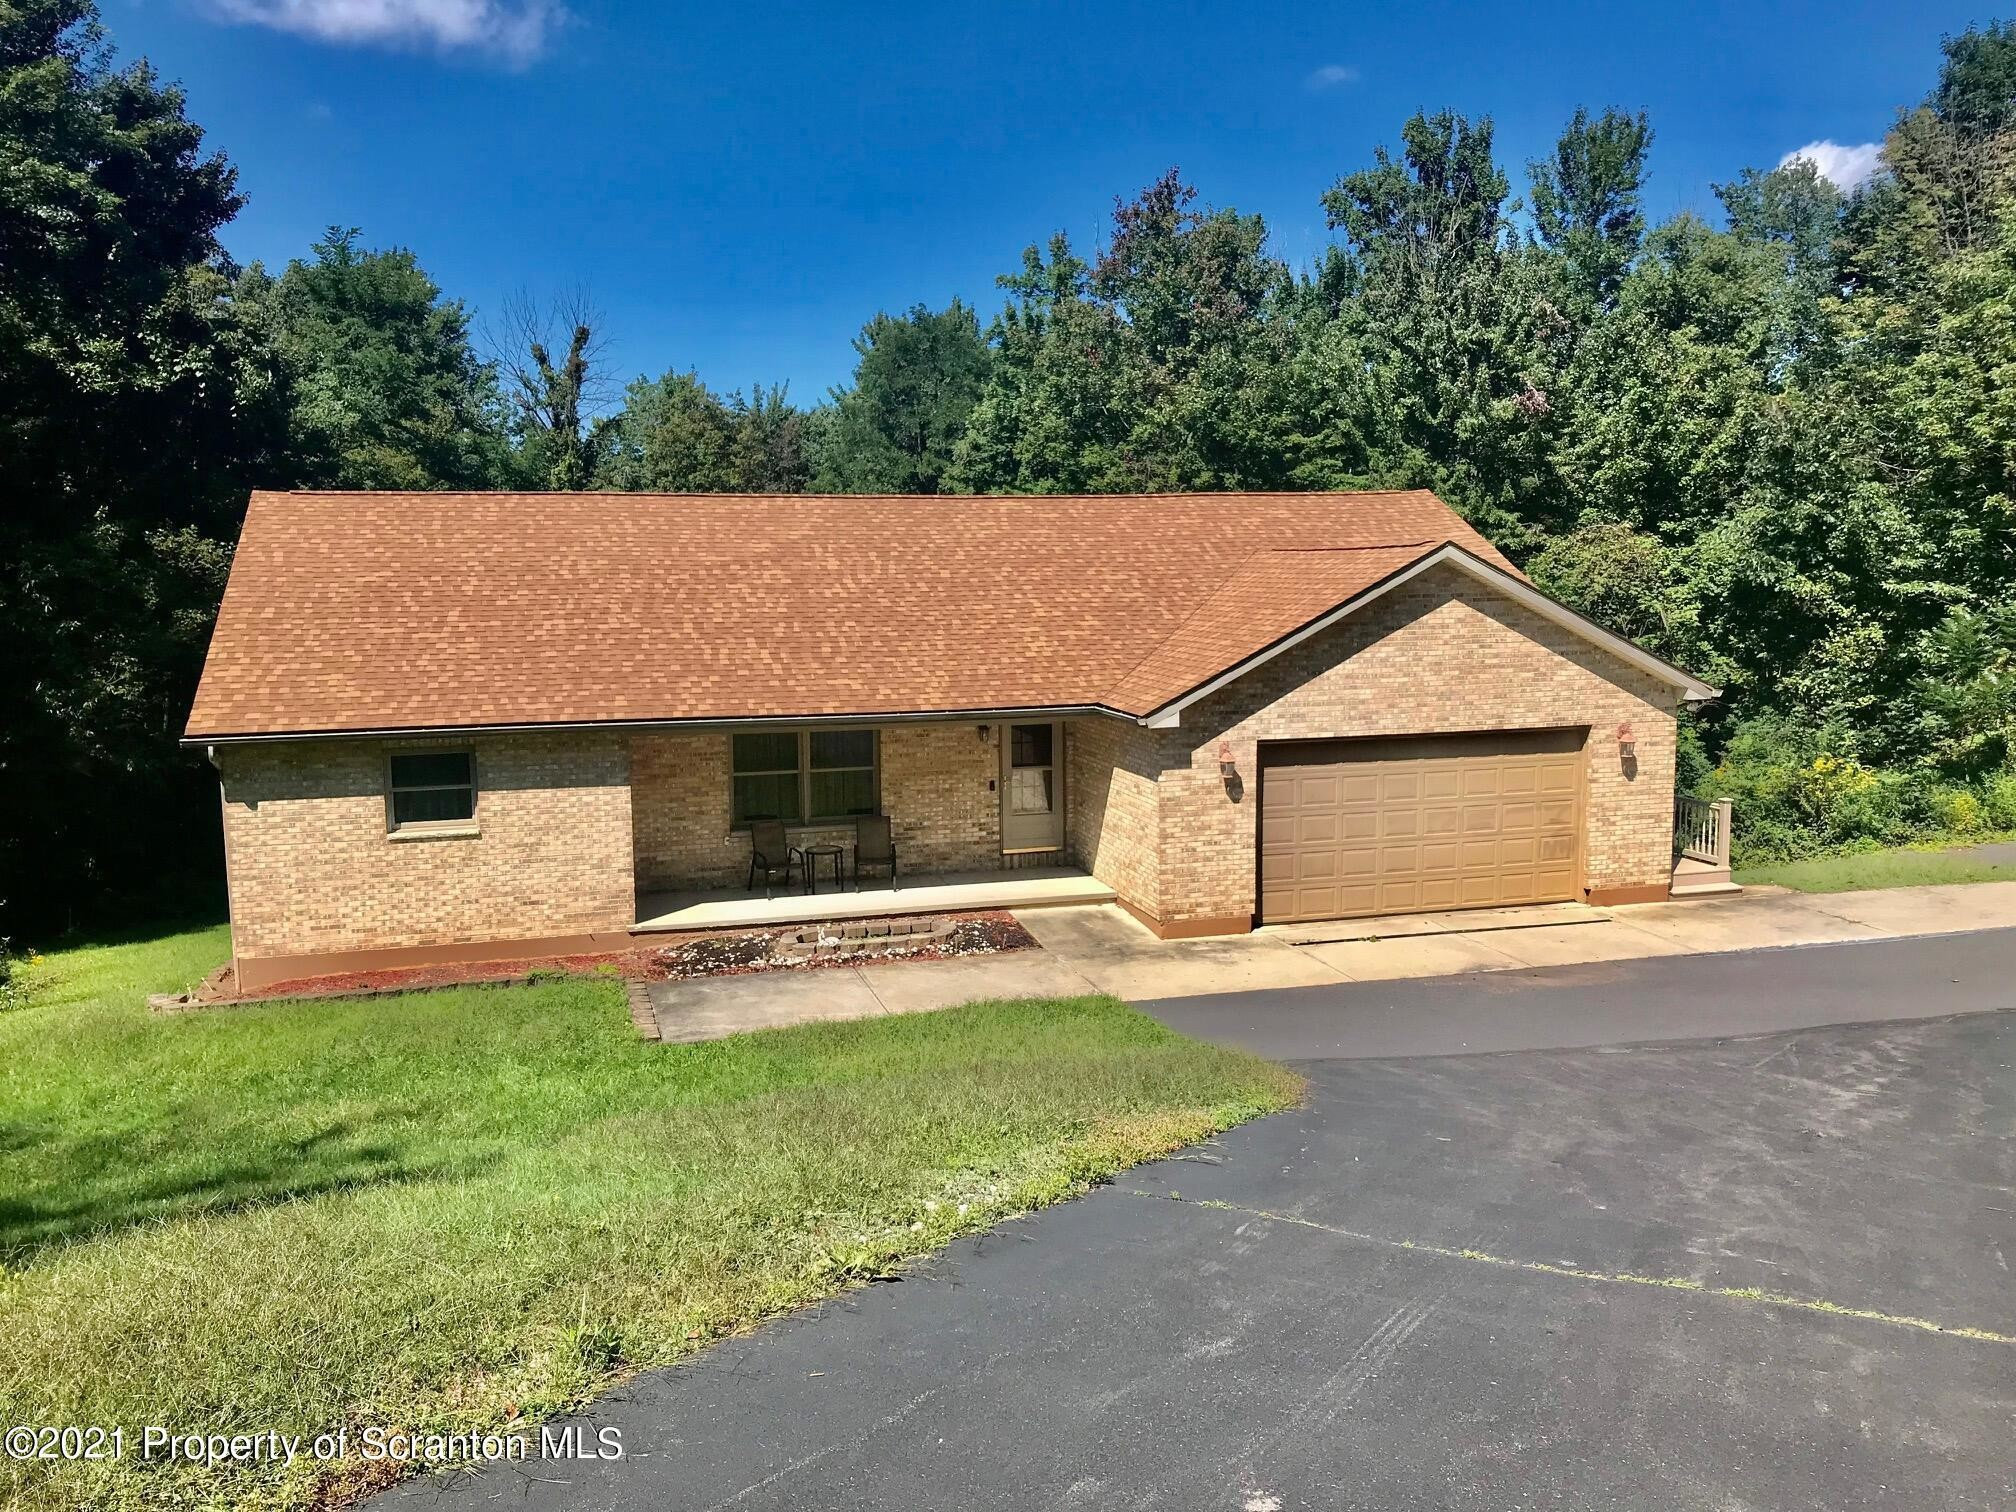 3-Bedroom House In Archbald